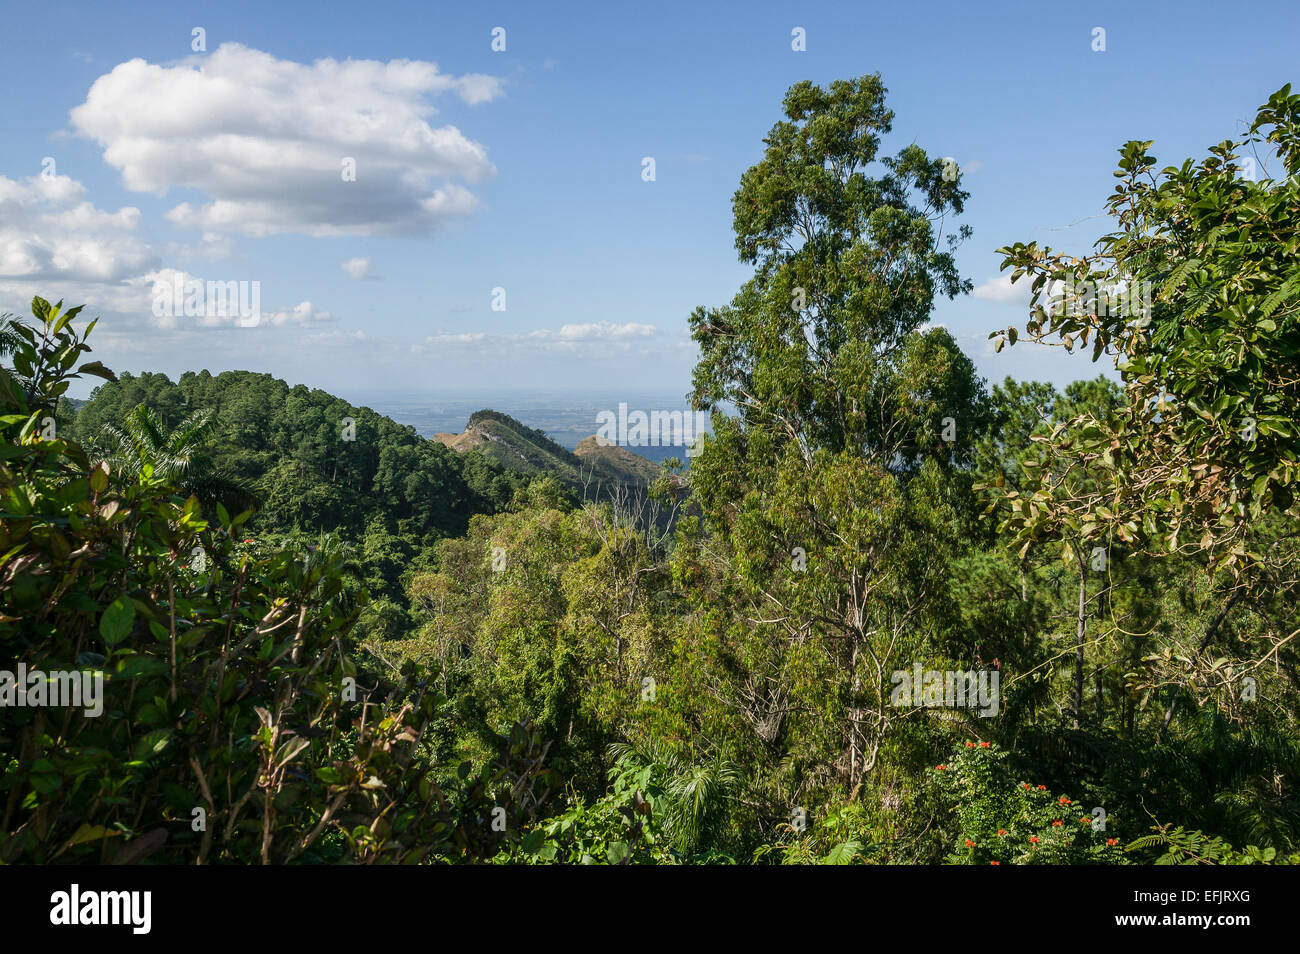 View from Sierra del Escambray mountains, Cienfuegos Province, Cuba. - Stock Image